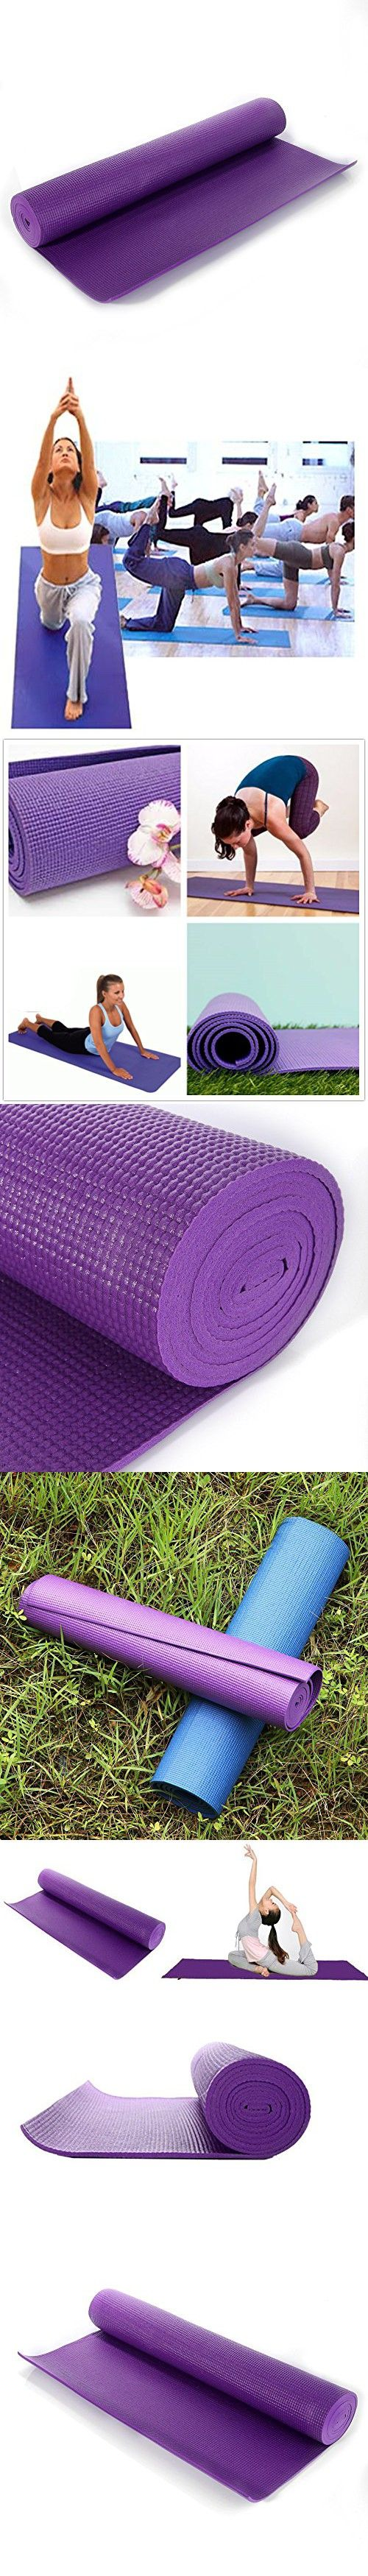 Evaline Extra Thick High exercise Anti-Slip Density Anti-Tear Exercise Foam Yoga Mat (Purple 6824inch)